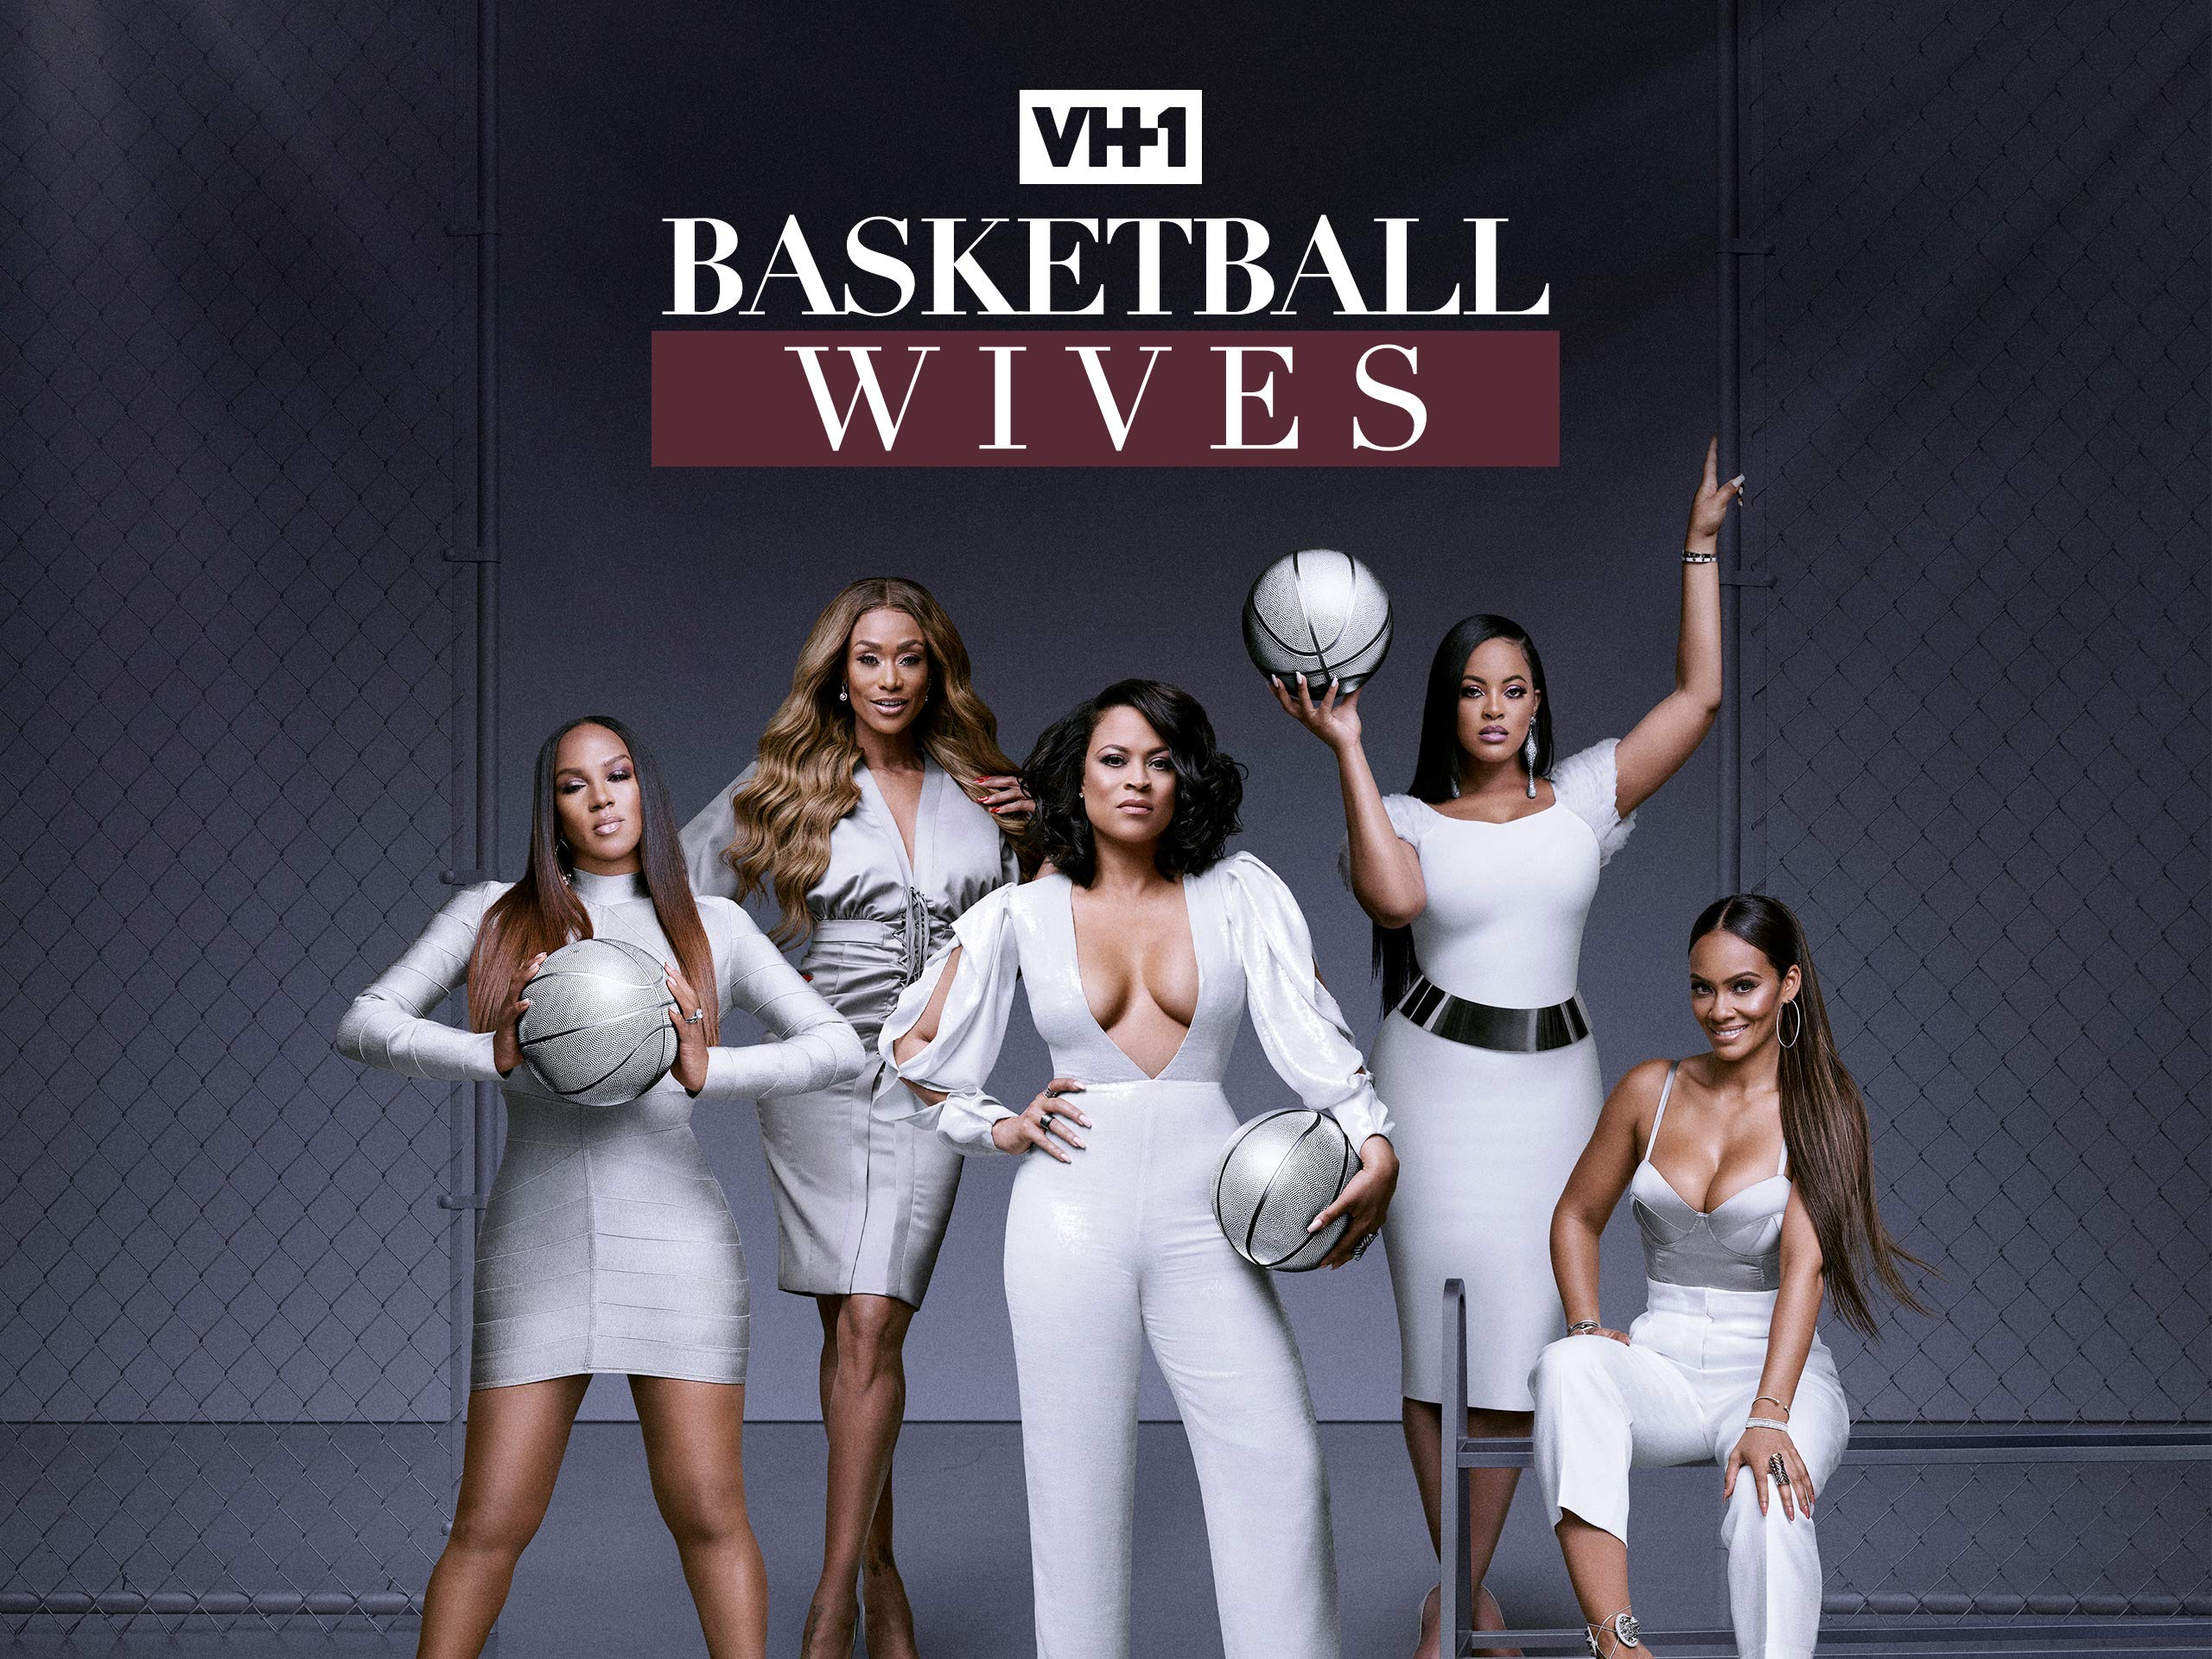 basketball wives season 6 episode 10 free online